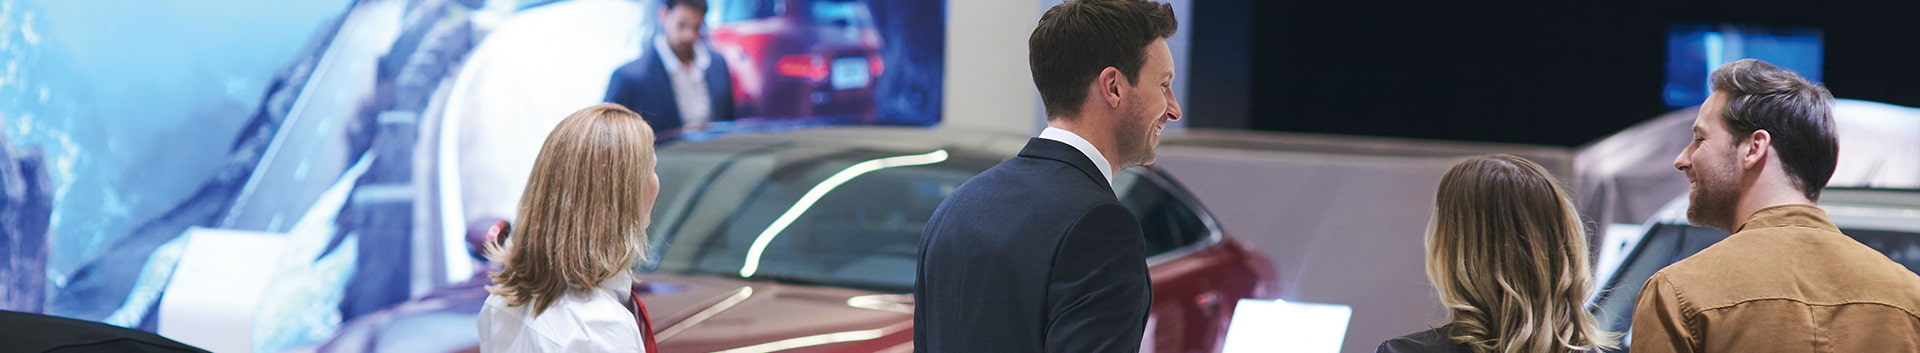 Jaguar staff greeting and showing their customers around the dealership in the showroom